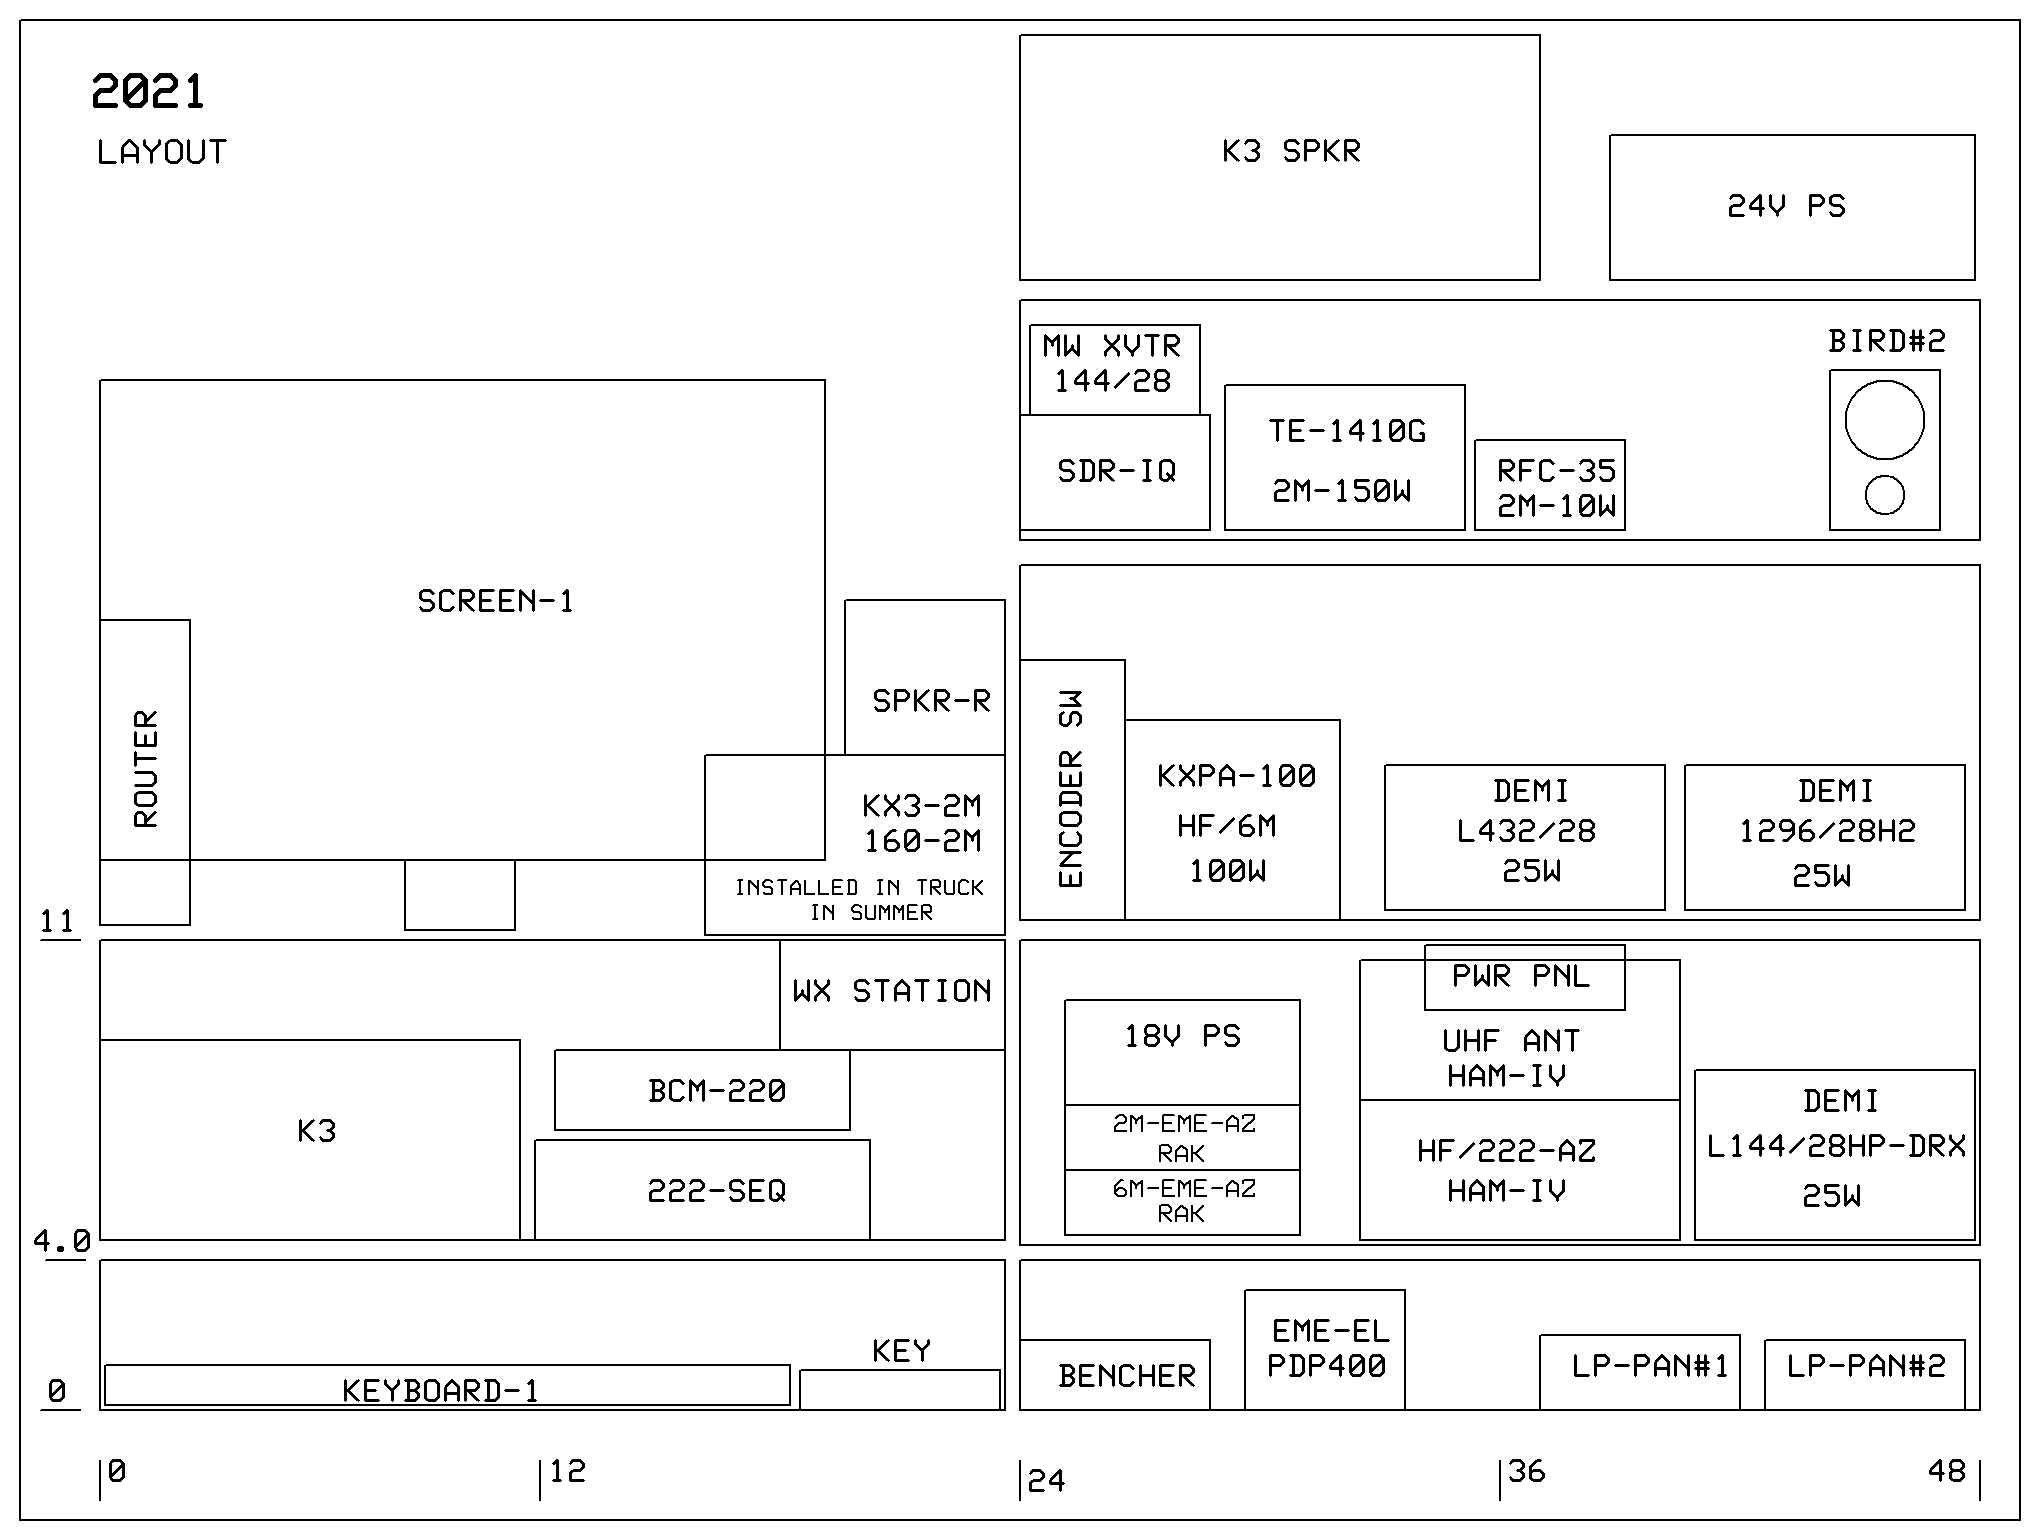 Kl7uw Station Layout Page Block Diagram Key And Cable Drawings Plus 2018 Proposed Changes